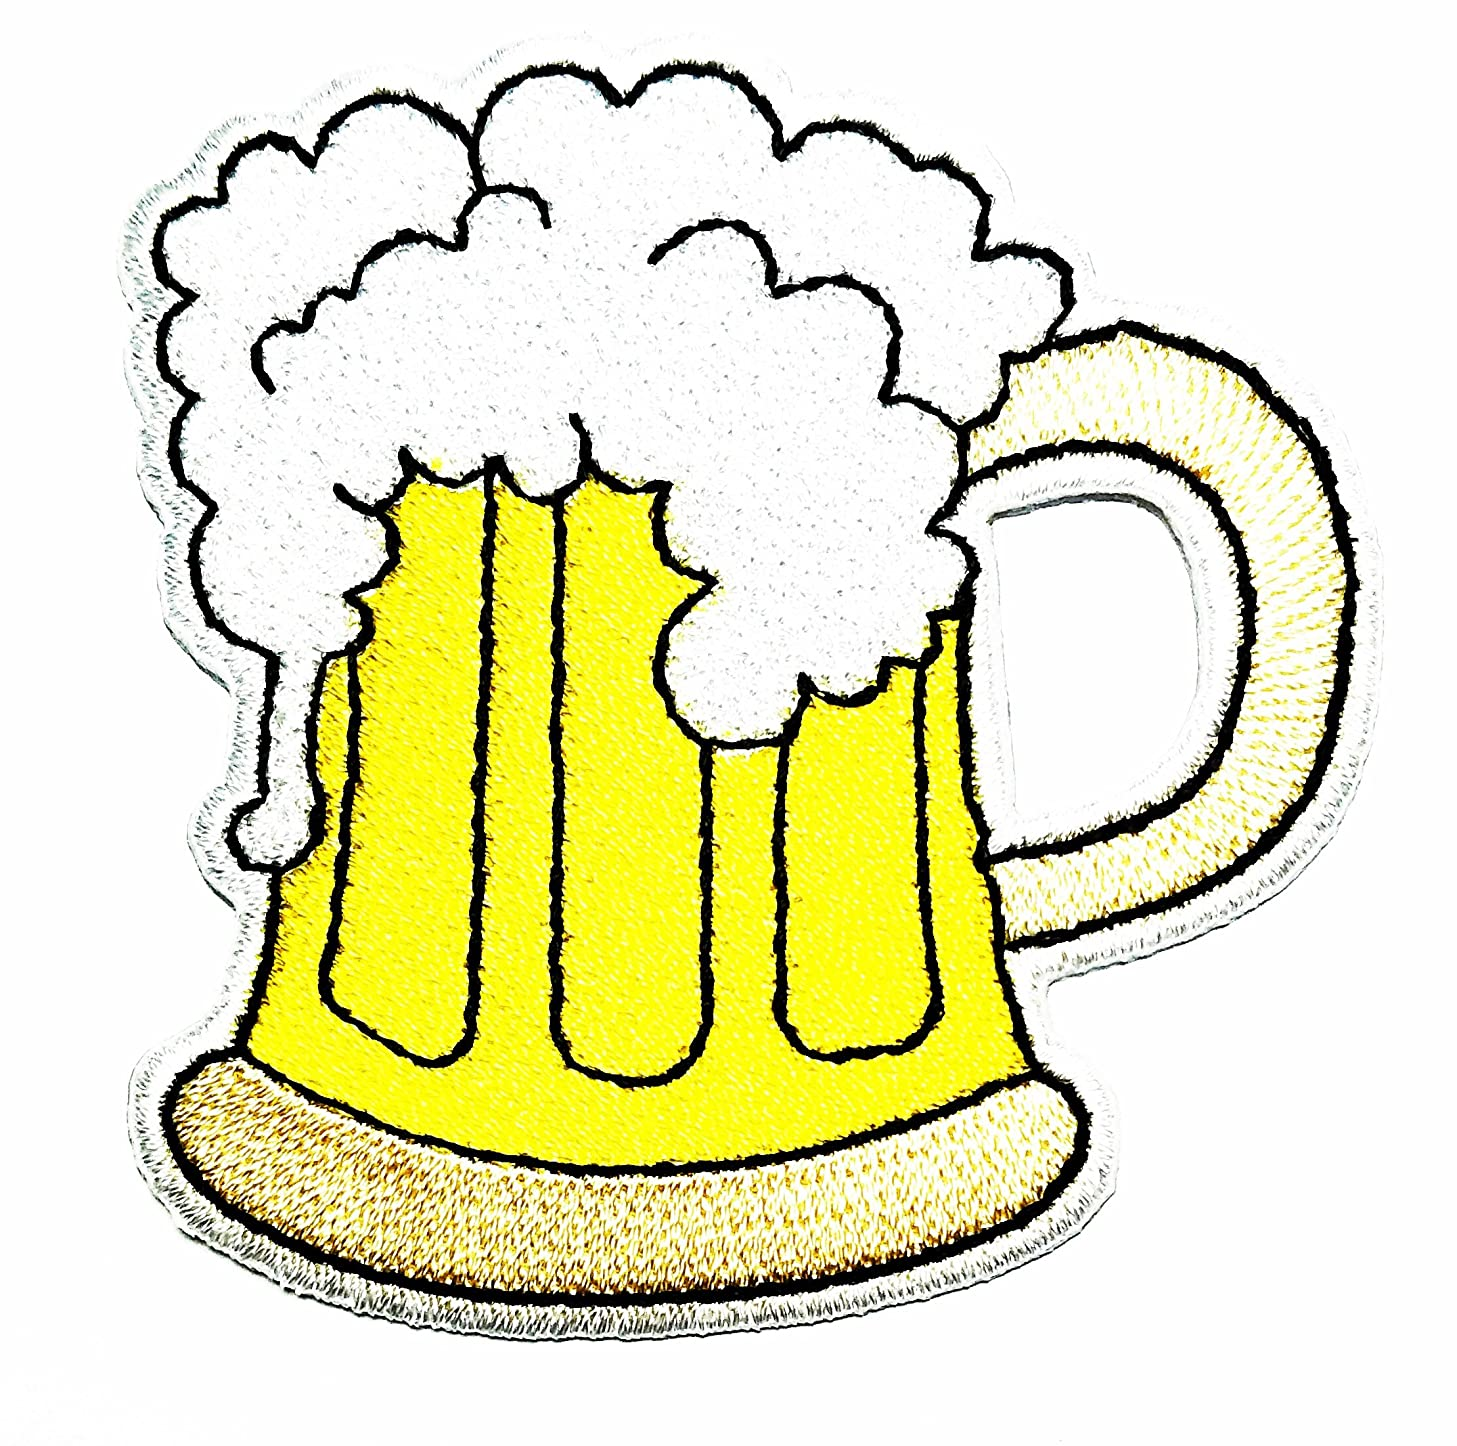 HHO Beer Glass Patch Embroidered DIY Patches, Cute Applique Sew Iron on Kids Craft Patch for Bags Jackets Jeans Clothes